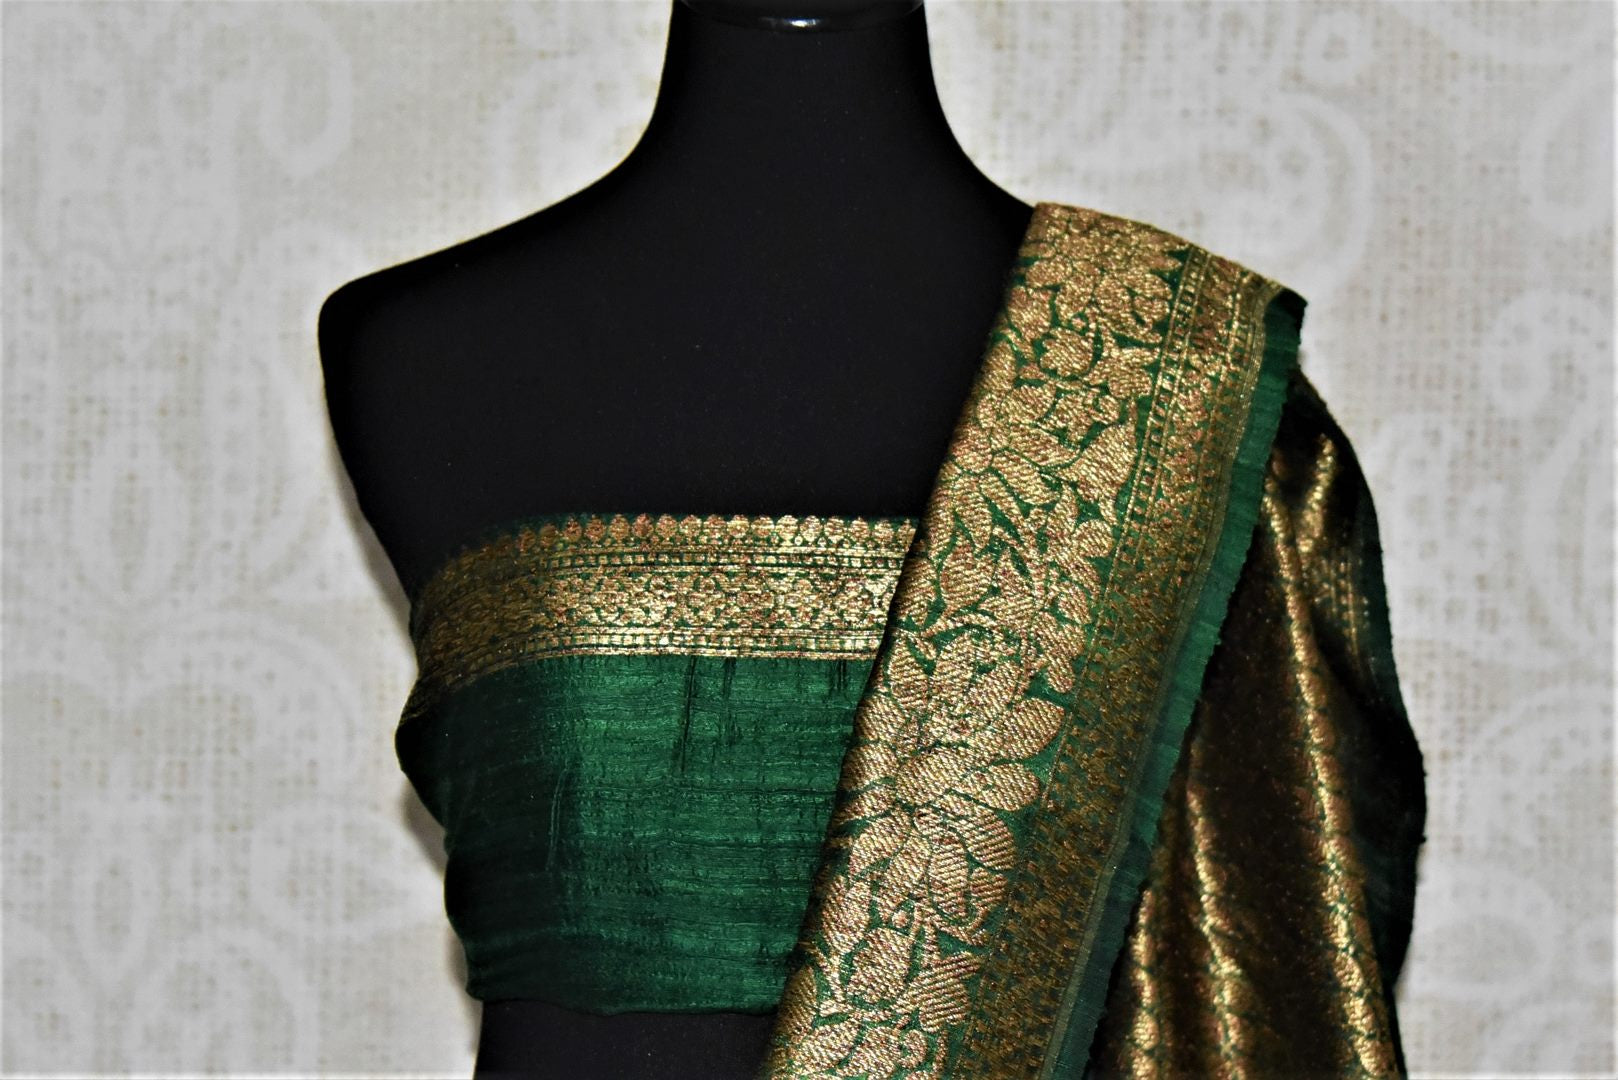 Buy lovely blue tussar Benarasi saree online in USA with green antique zari border. Keep your ethnic style updated with latest designer saris, handloom sarees, pure silk sarees from Pure Elegance Indian fashion store in USA.-blouse pallu